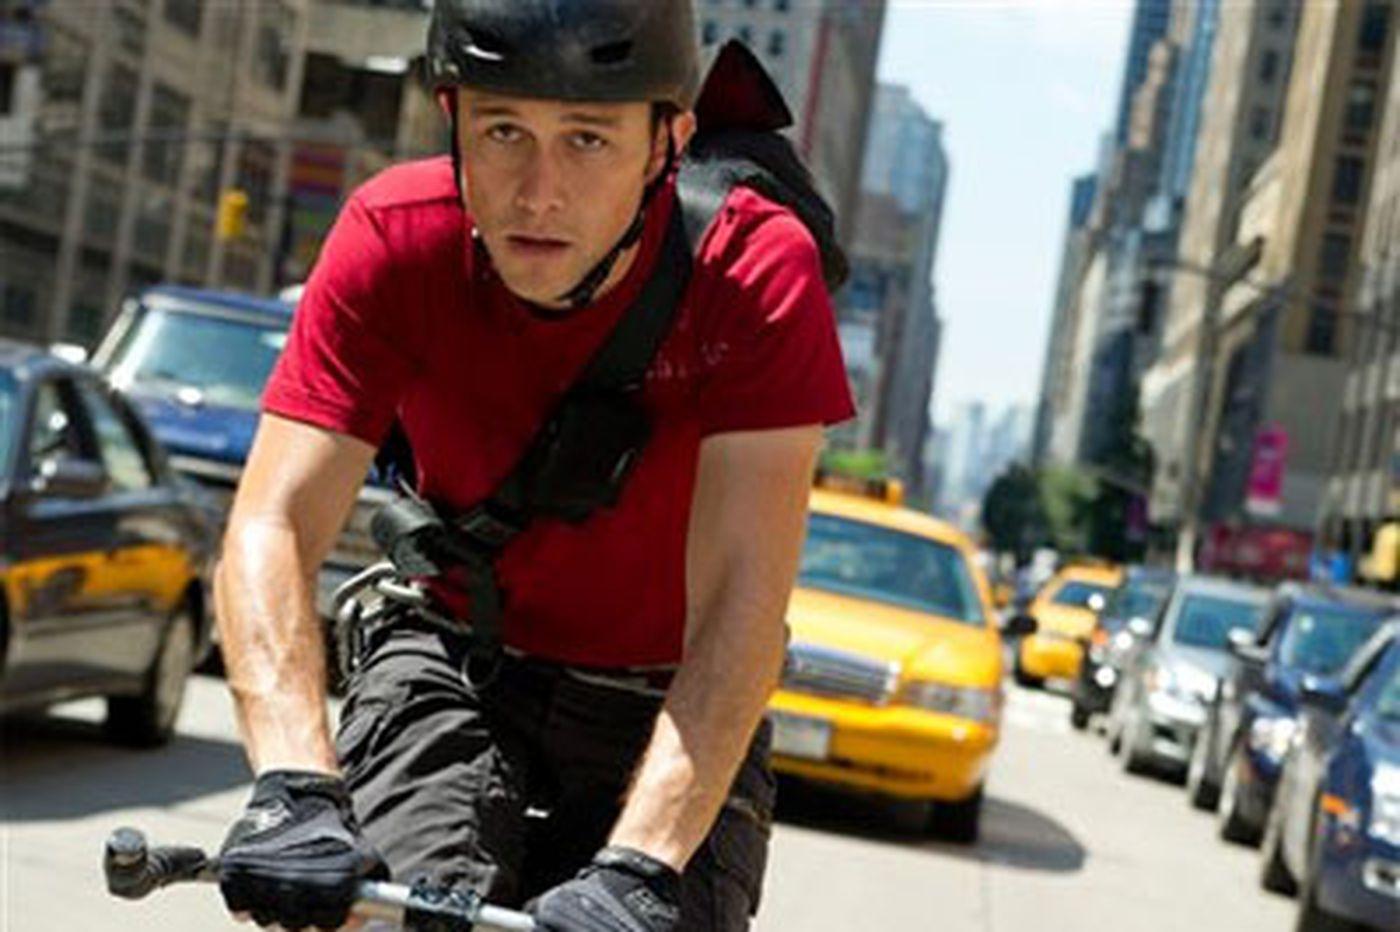 'Premium Rush' pedals retro format to younger crowd